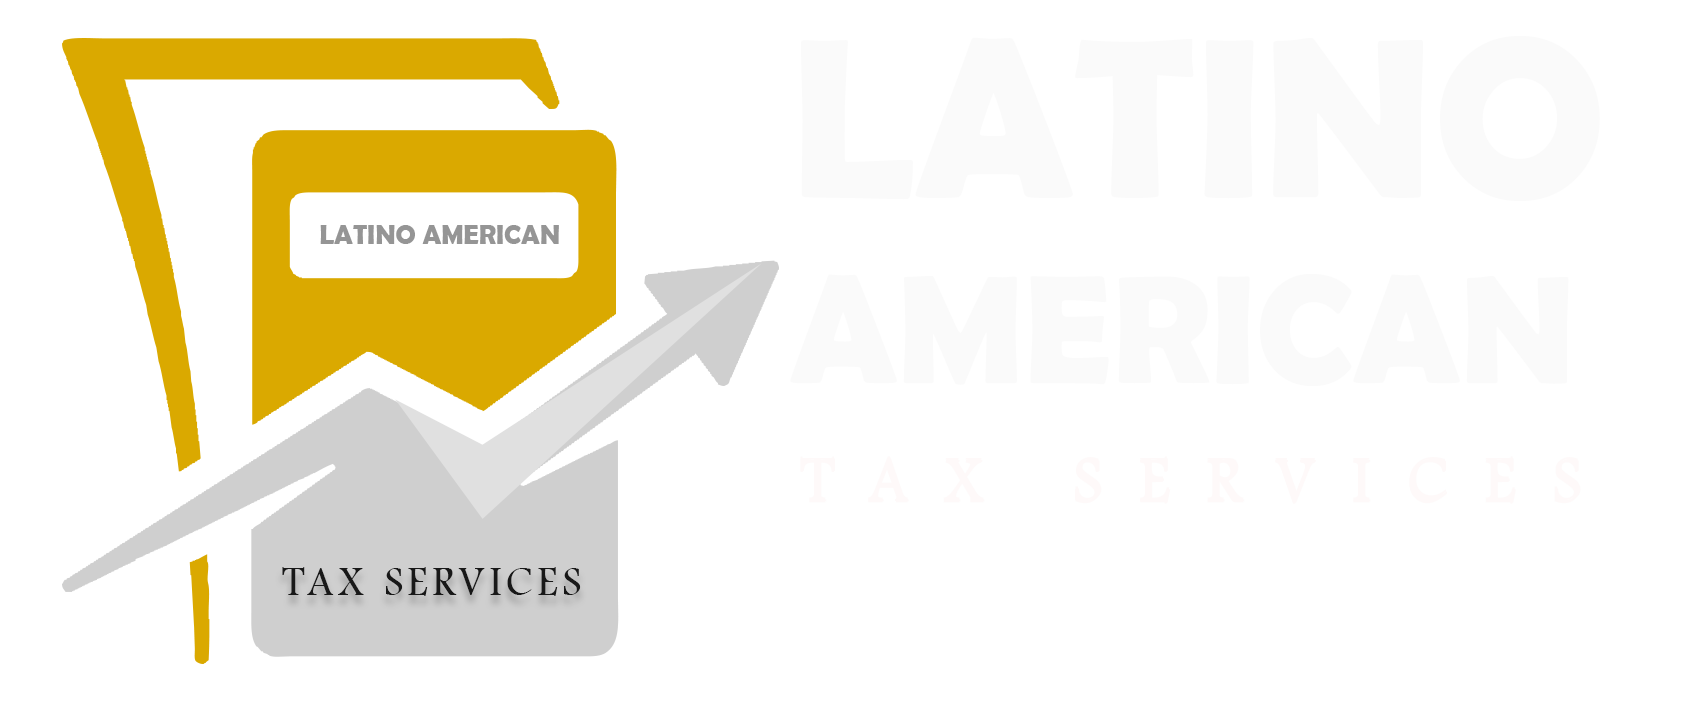 Latino American Tax Services